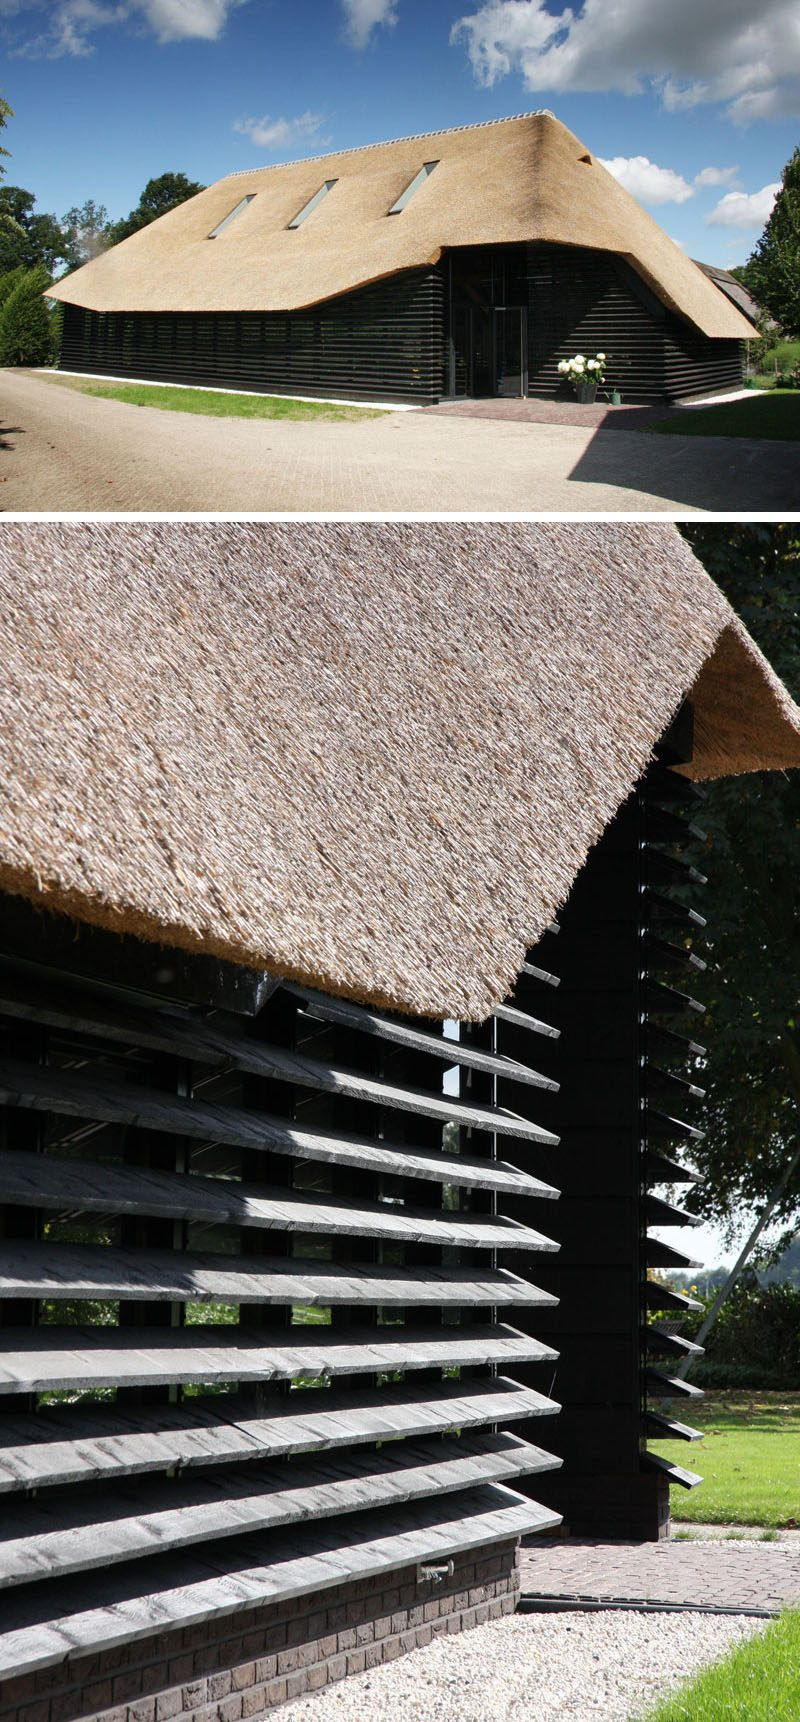 12 examples of modern houses and buildings that have a thatched roof the thatched roof on this building helped retain its historical roots while the rest